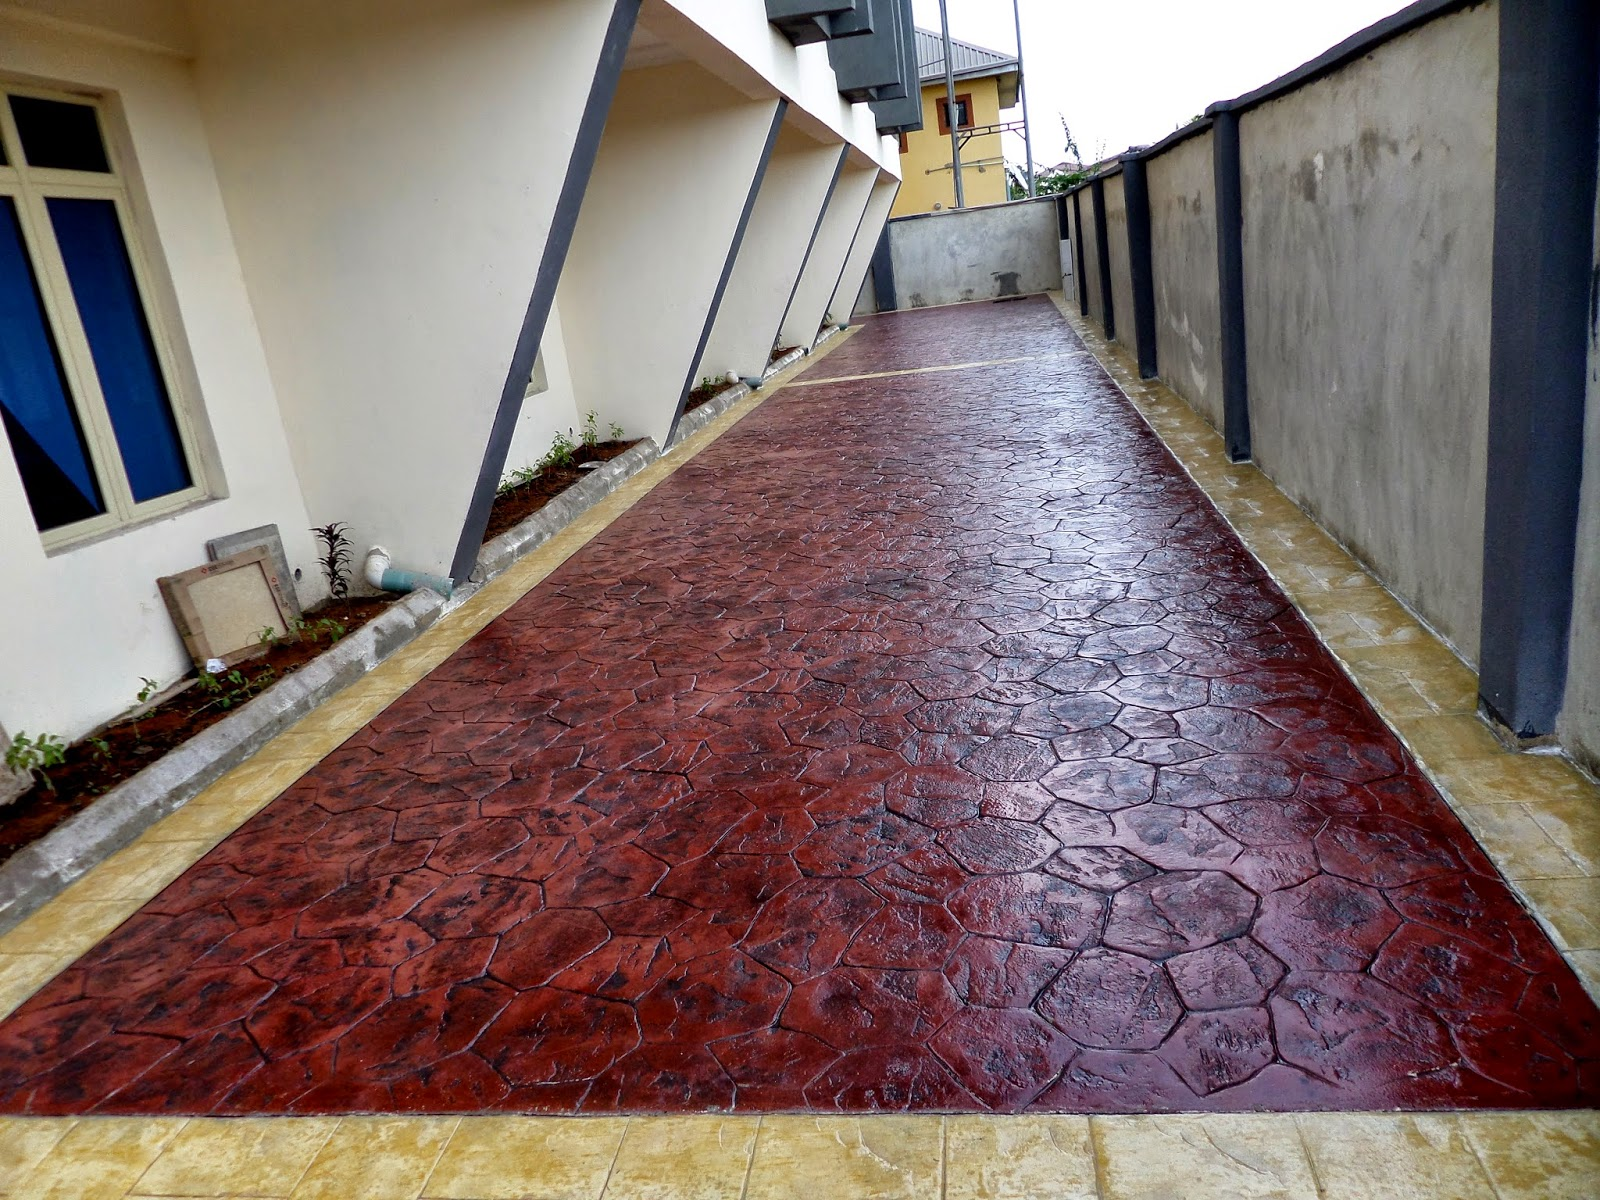 Lets shade nigeria give us a call today to see how we can change your home church environment or business with our beautiful durable cost effective decorative concrete dailygadgetfo Gallery